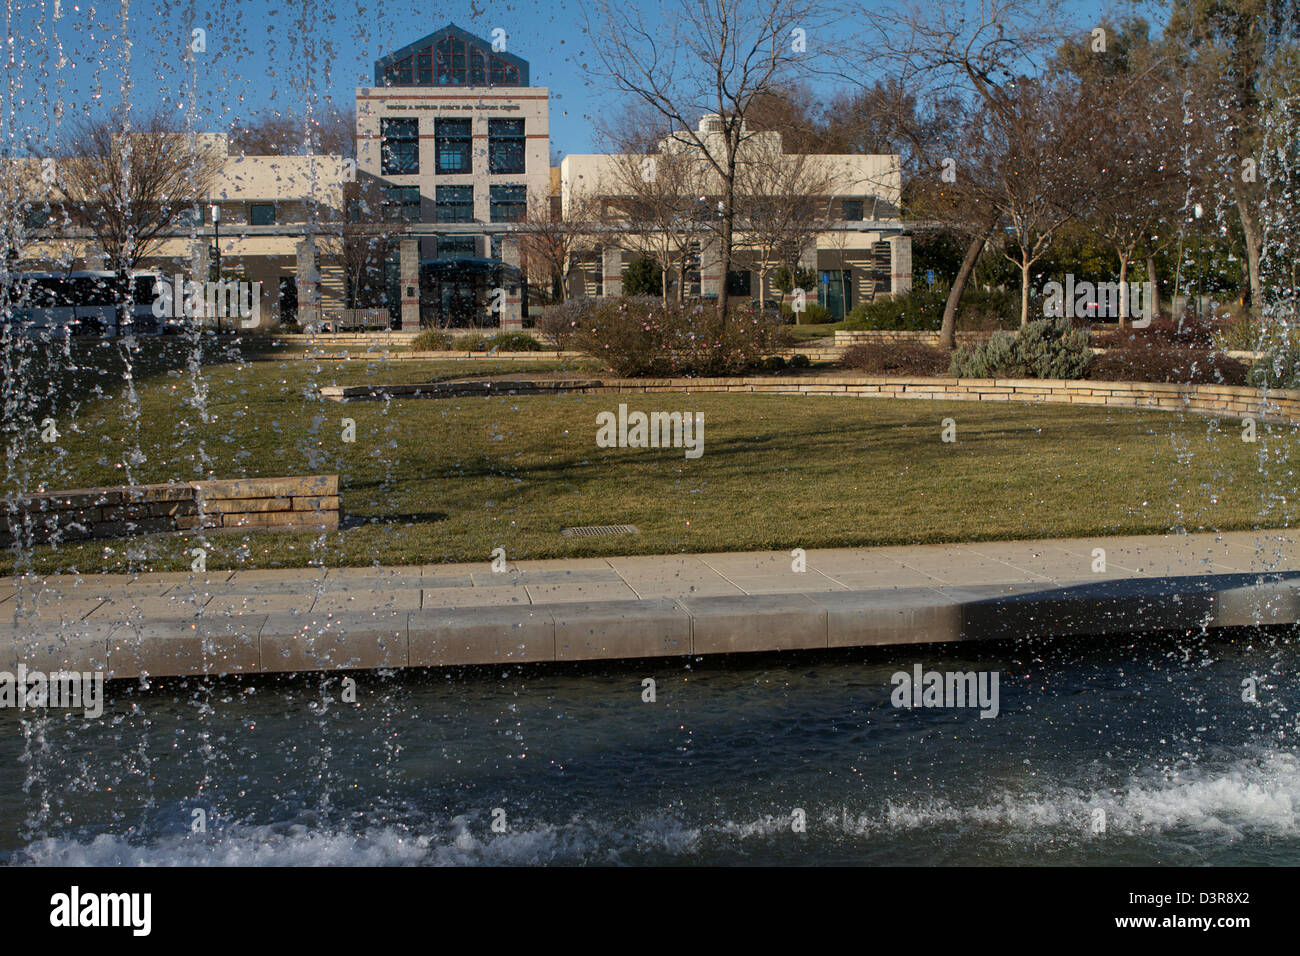 Uc Davis Stock Photos & Uc Davis Stock Images - Alamy